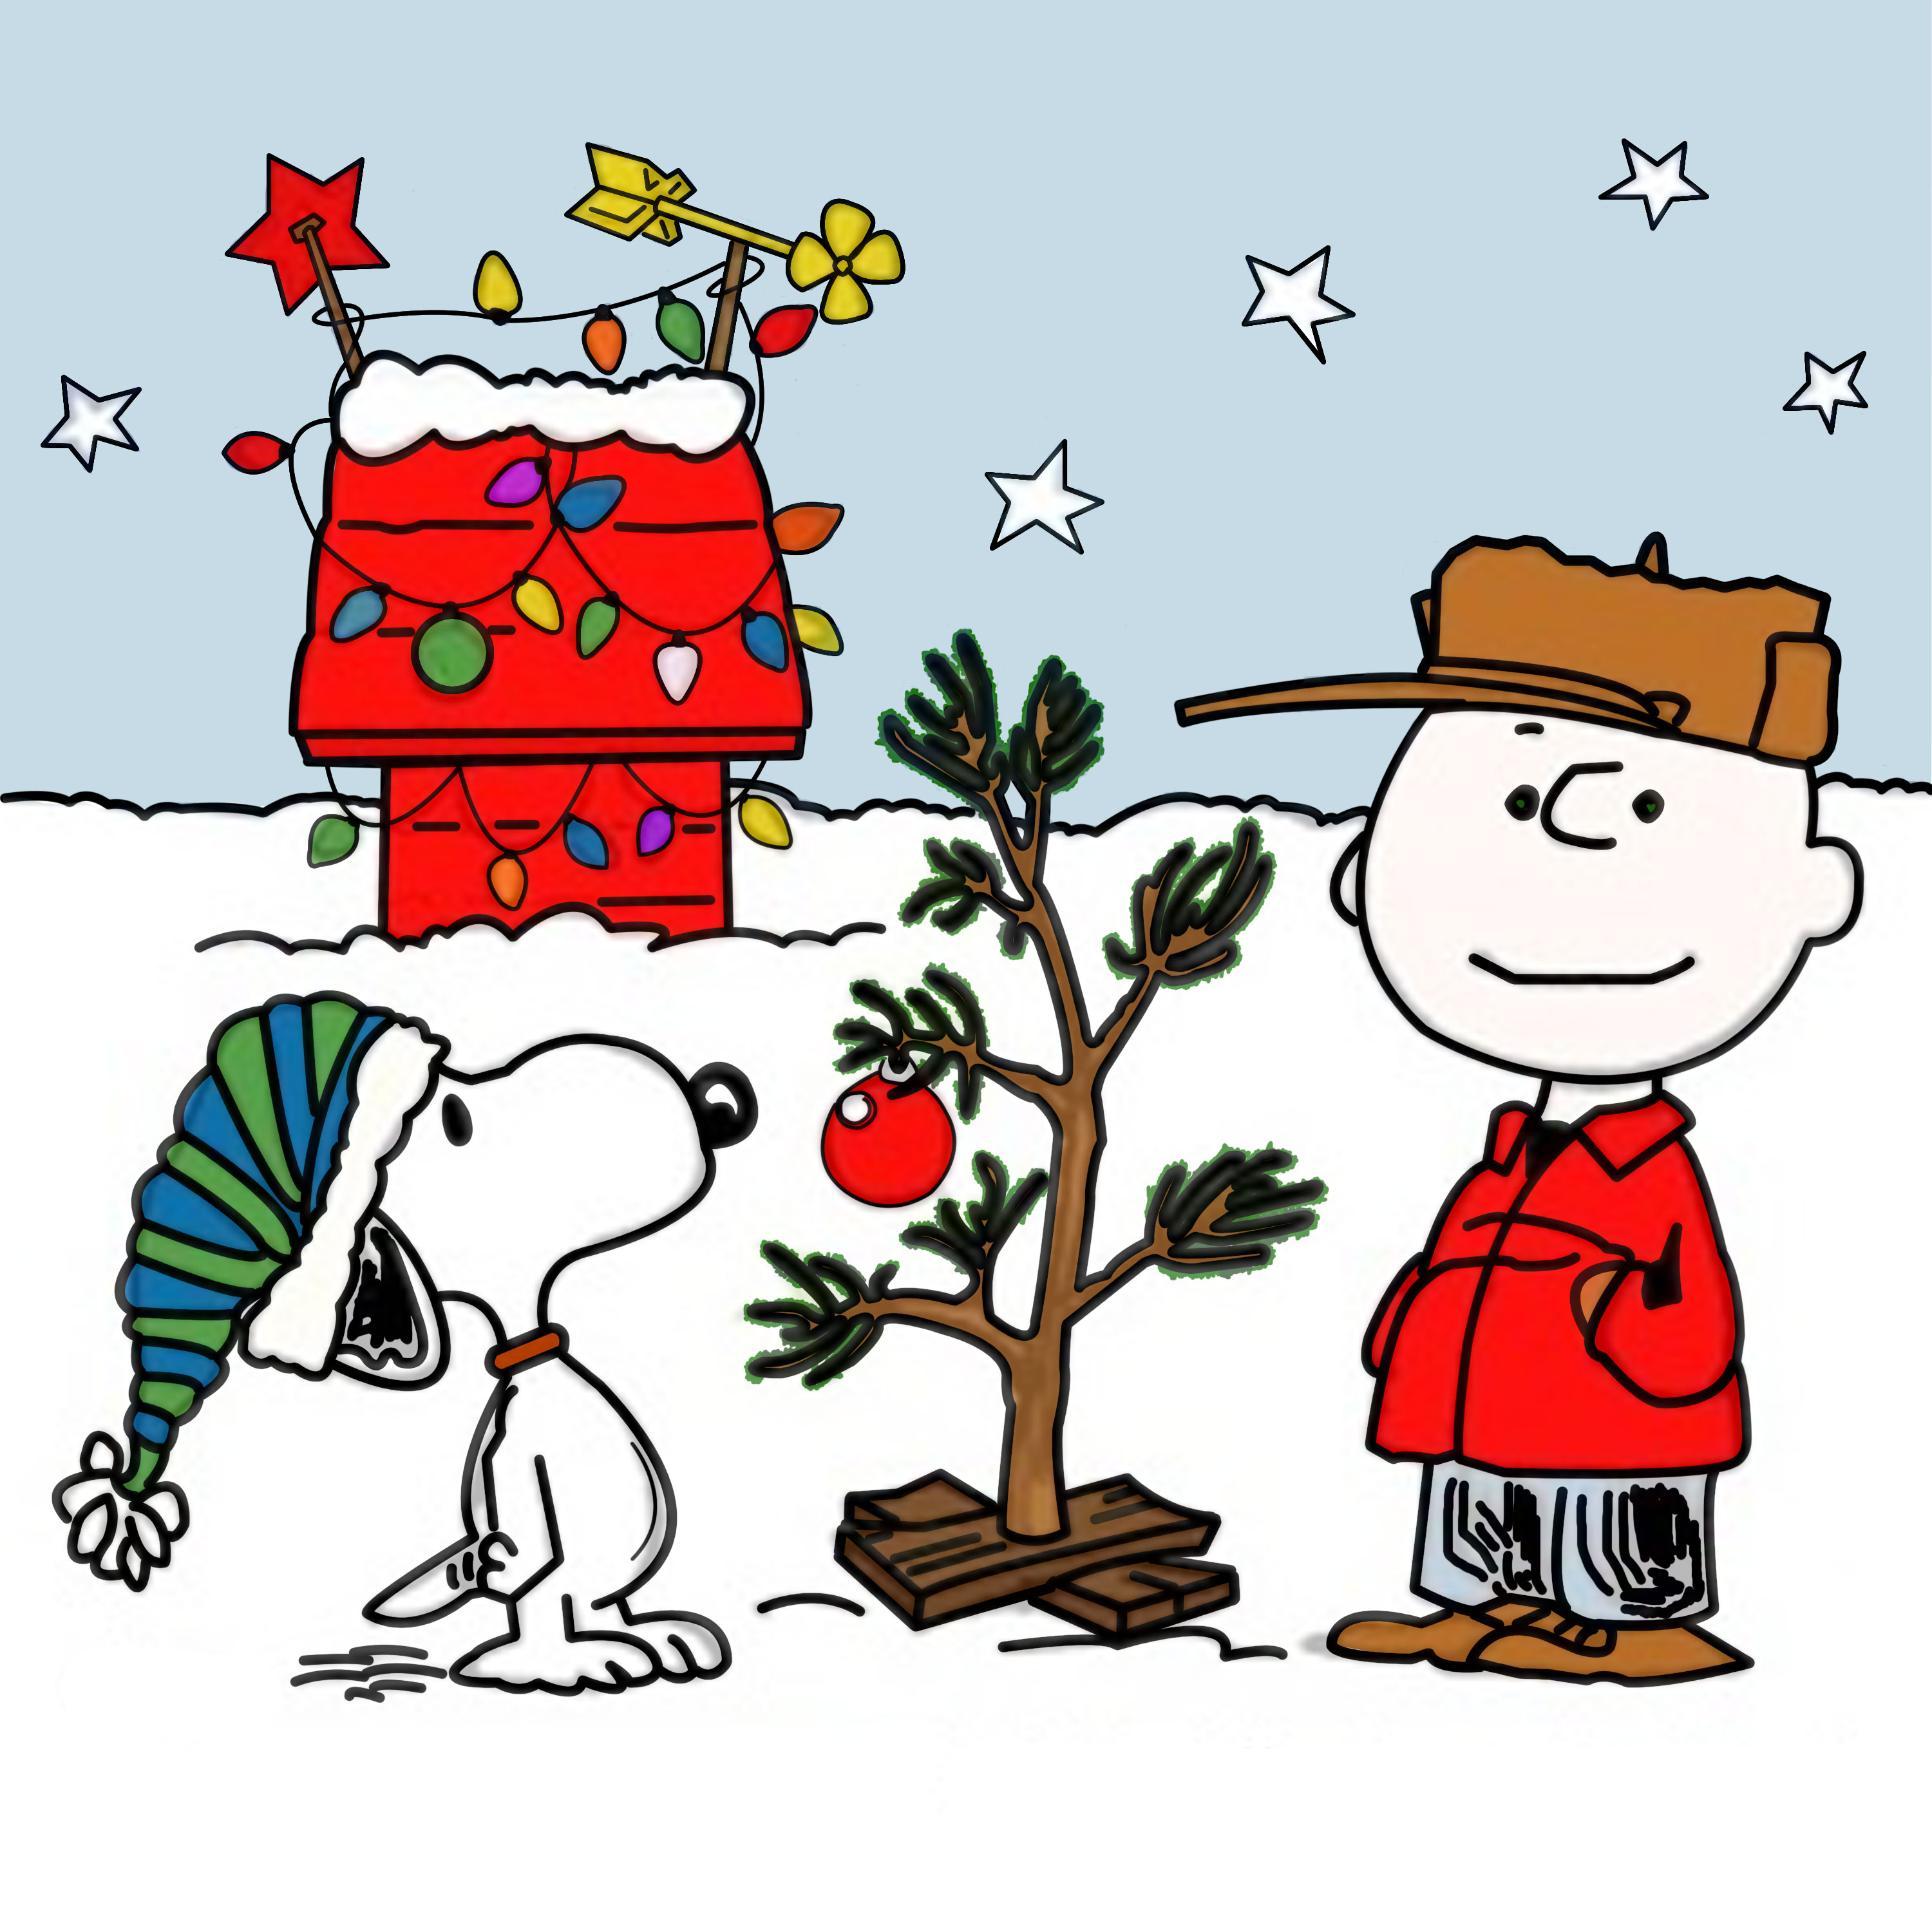 A charlie brown christmas a matter of church and state jude plauch in 1965 a charlie brown christmas premiered voltagebd Choice Image